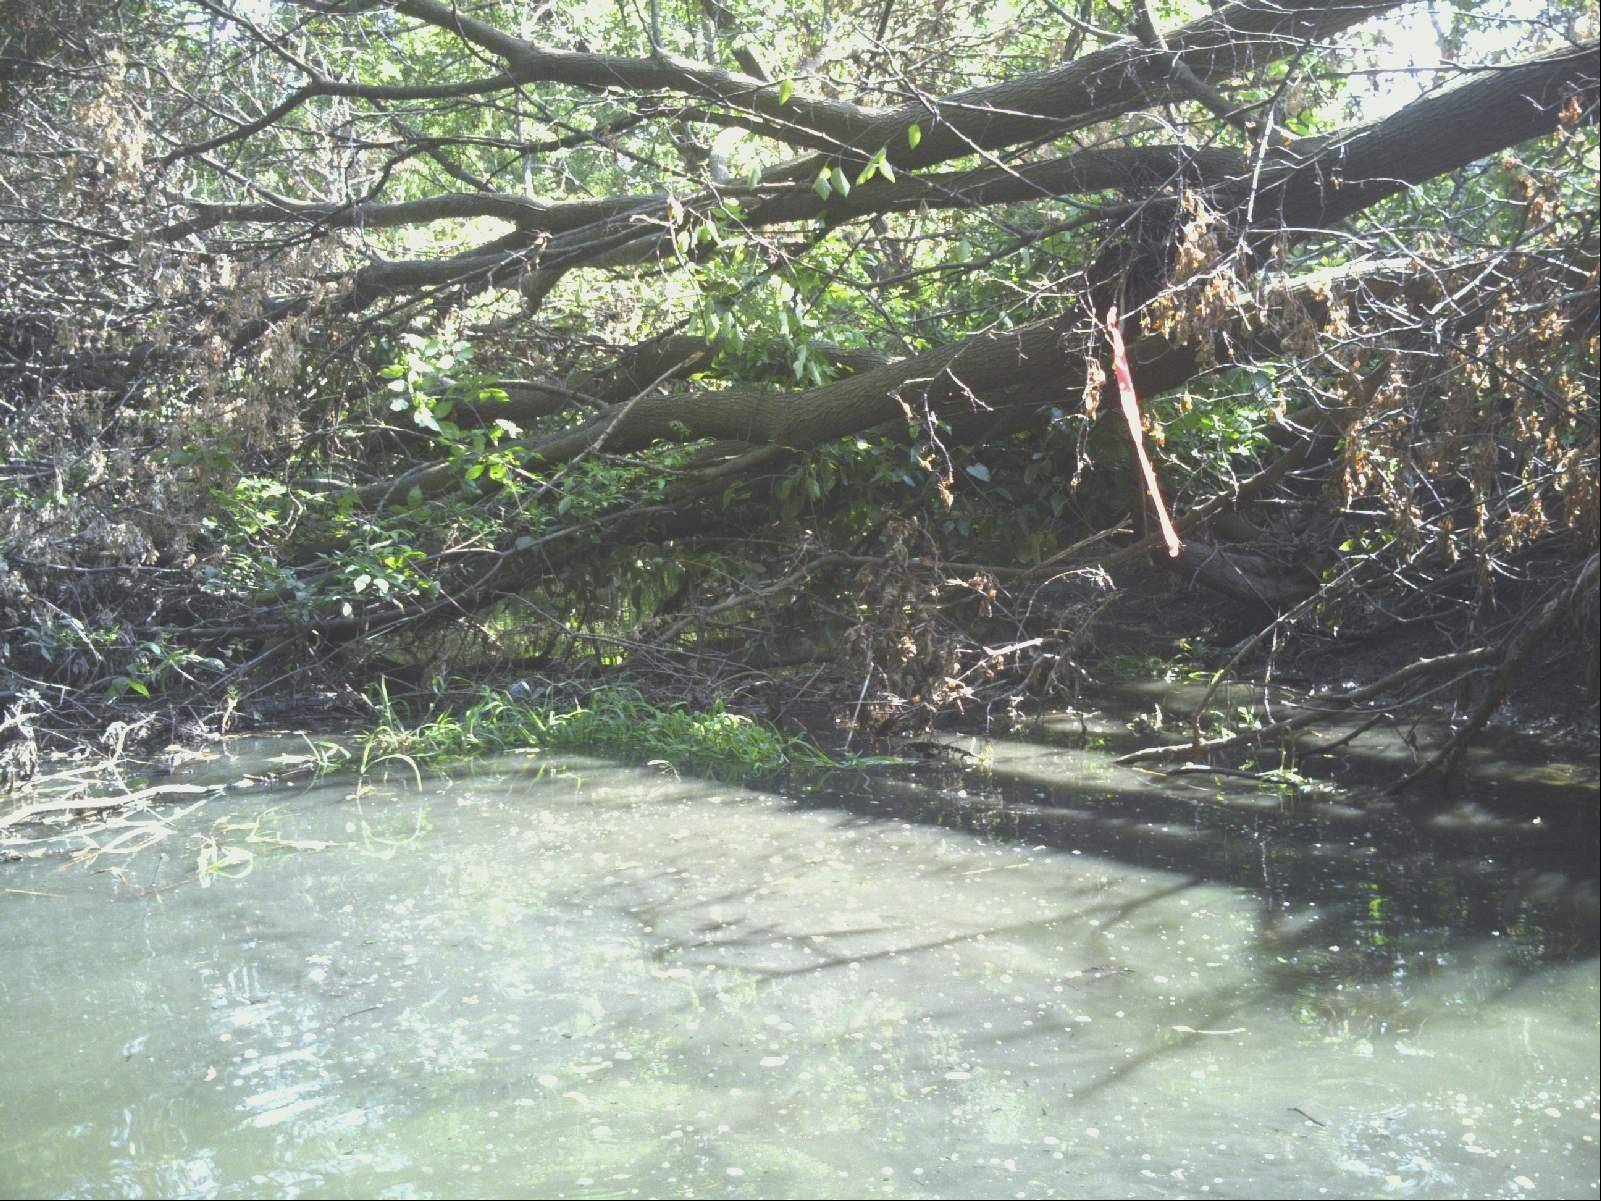 A downed tree blocks the flow of water in Klein Creek near the 400 block of Silverleaf Boulevard in Carol Stream. Village officials say such major obstructions will be removed by a contractor this fall.